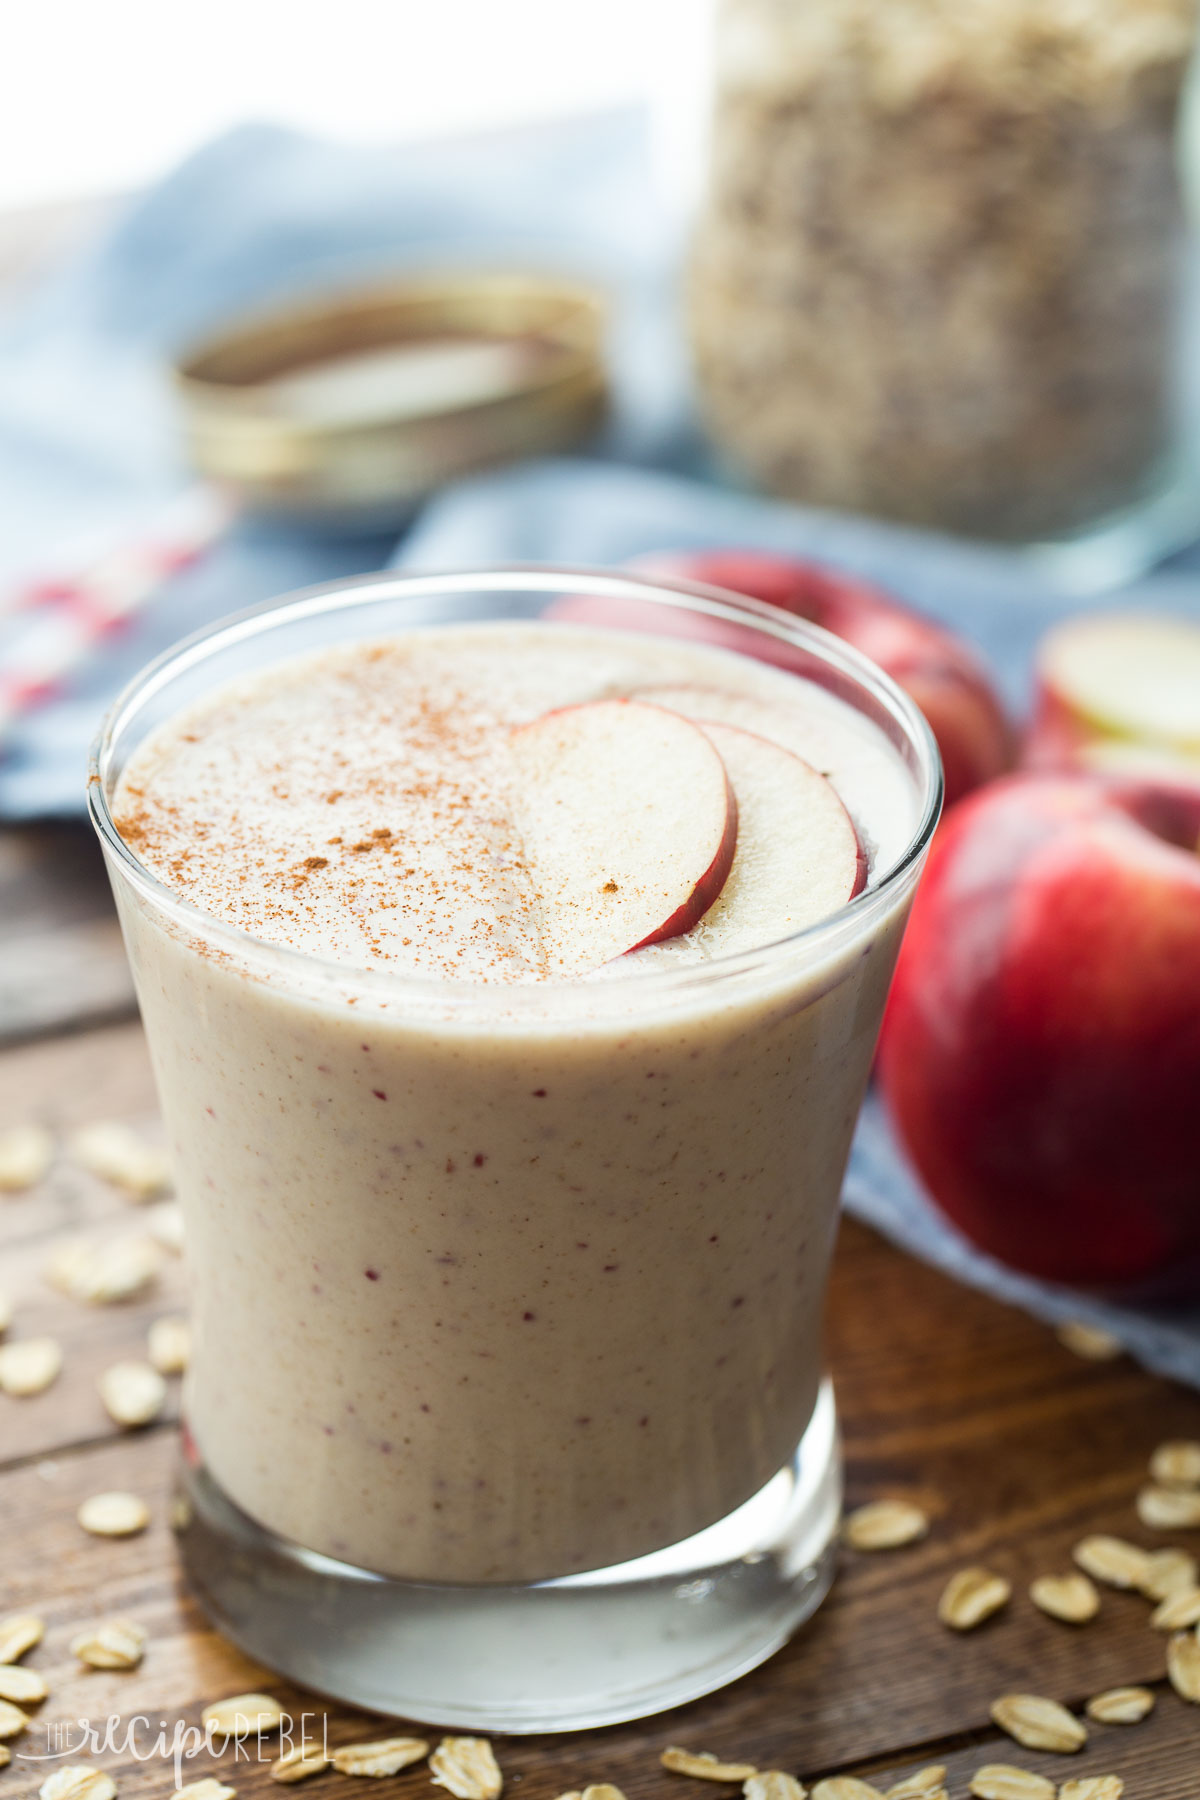 Chocolate Banana Peanut Butter Oatmeal Smoothie